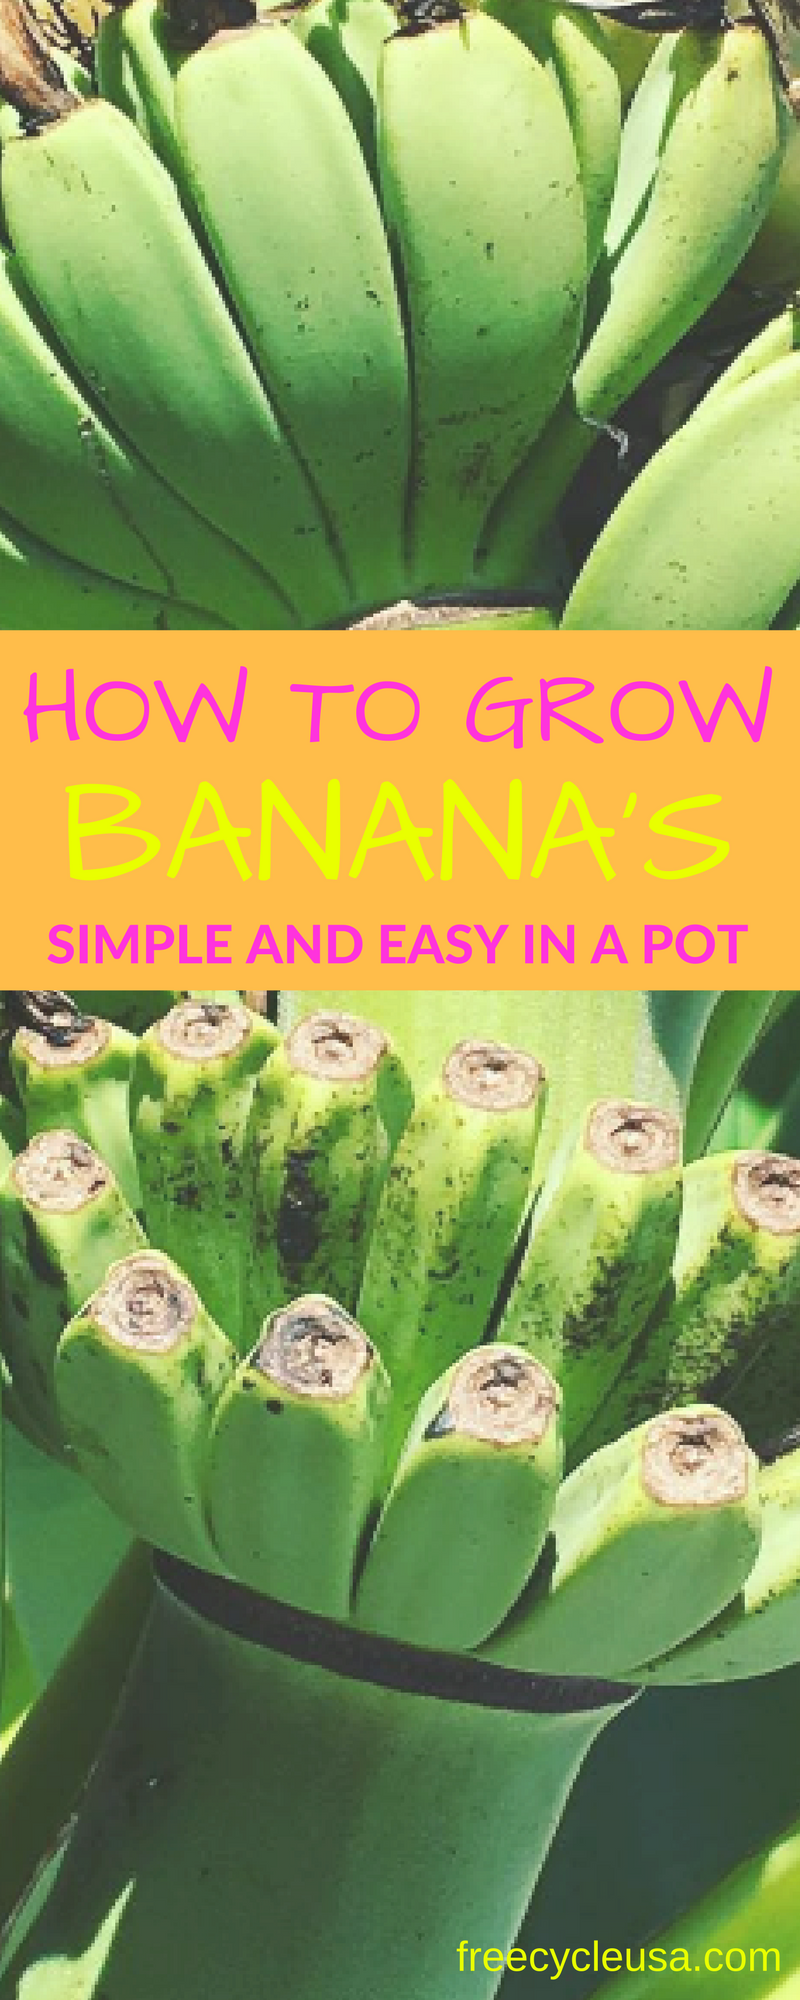 How To Grow Banana In A Pot Freecycle Usa